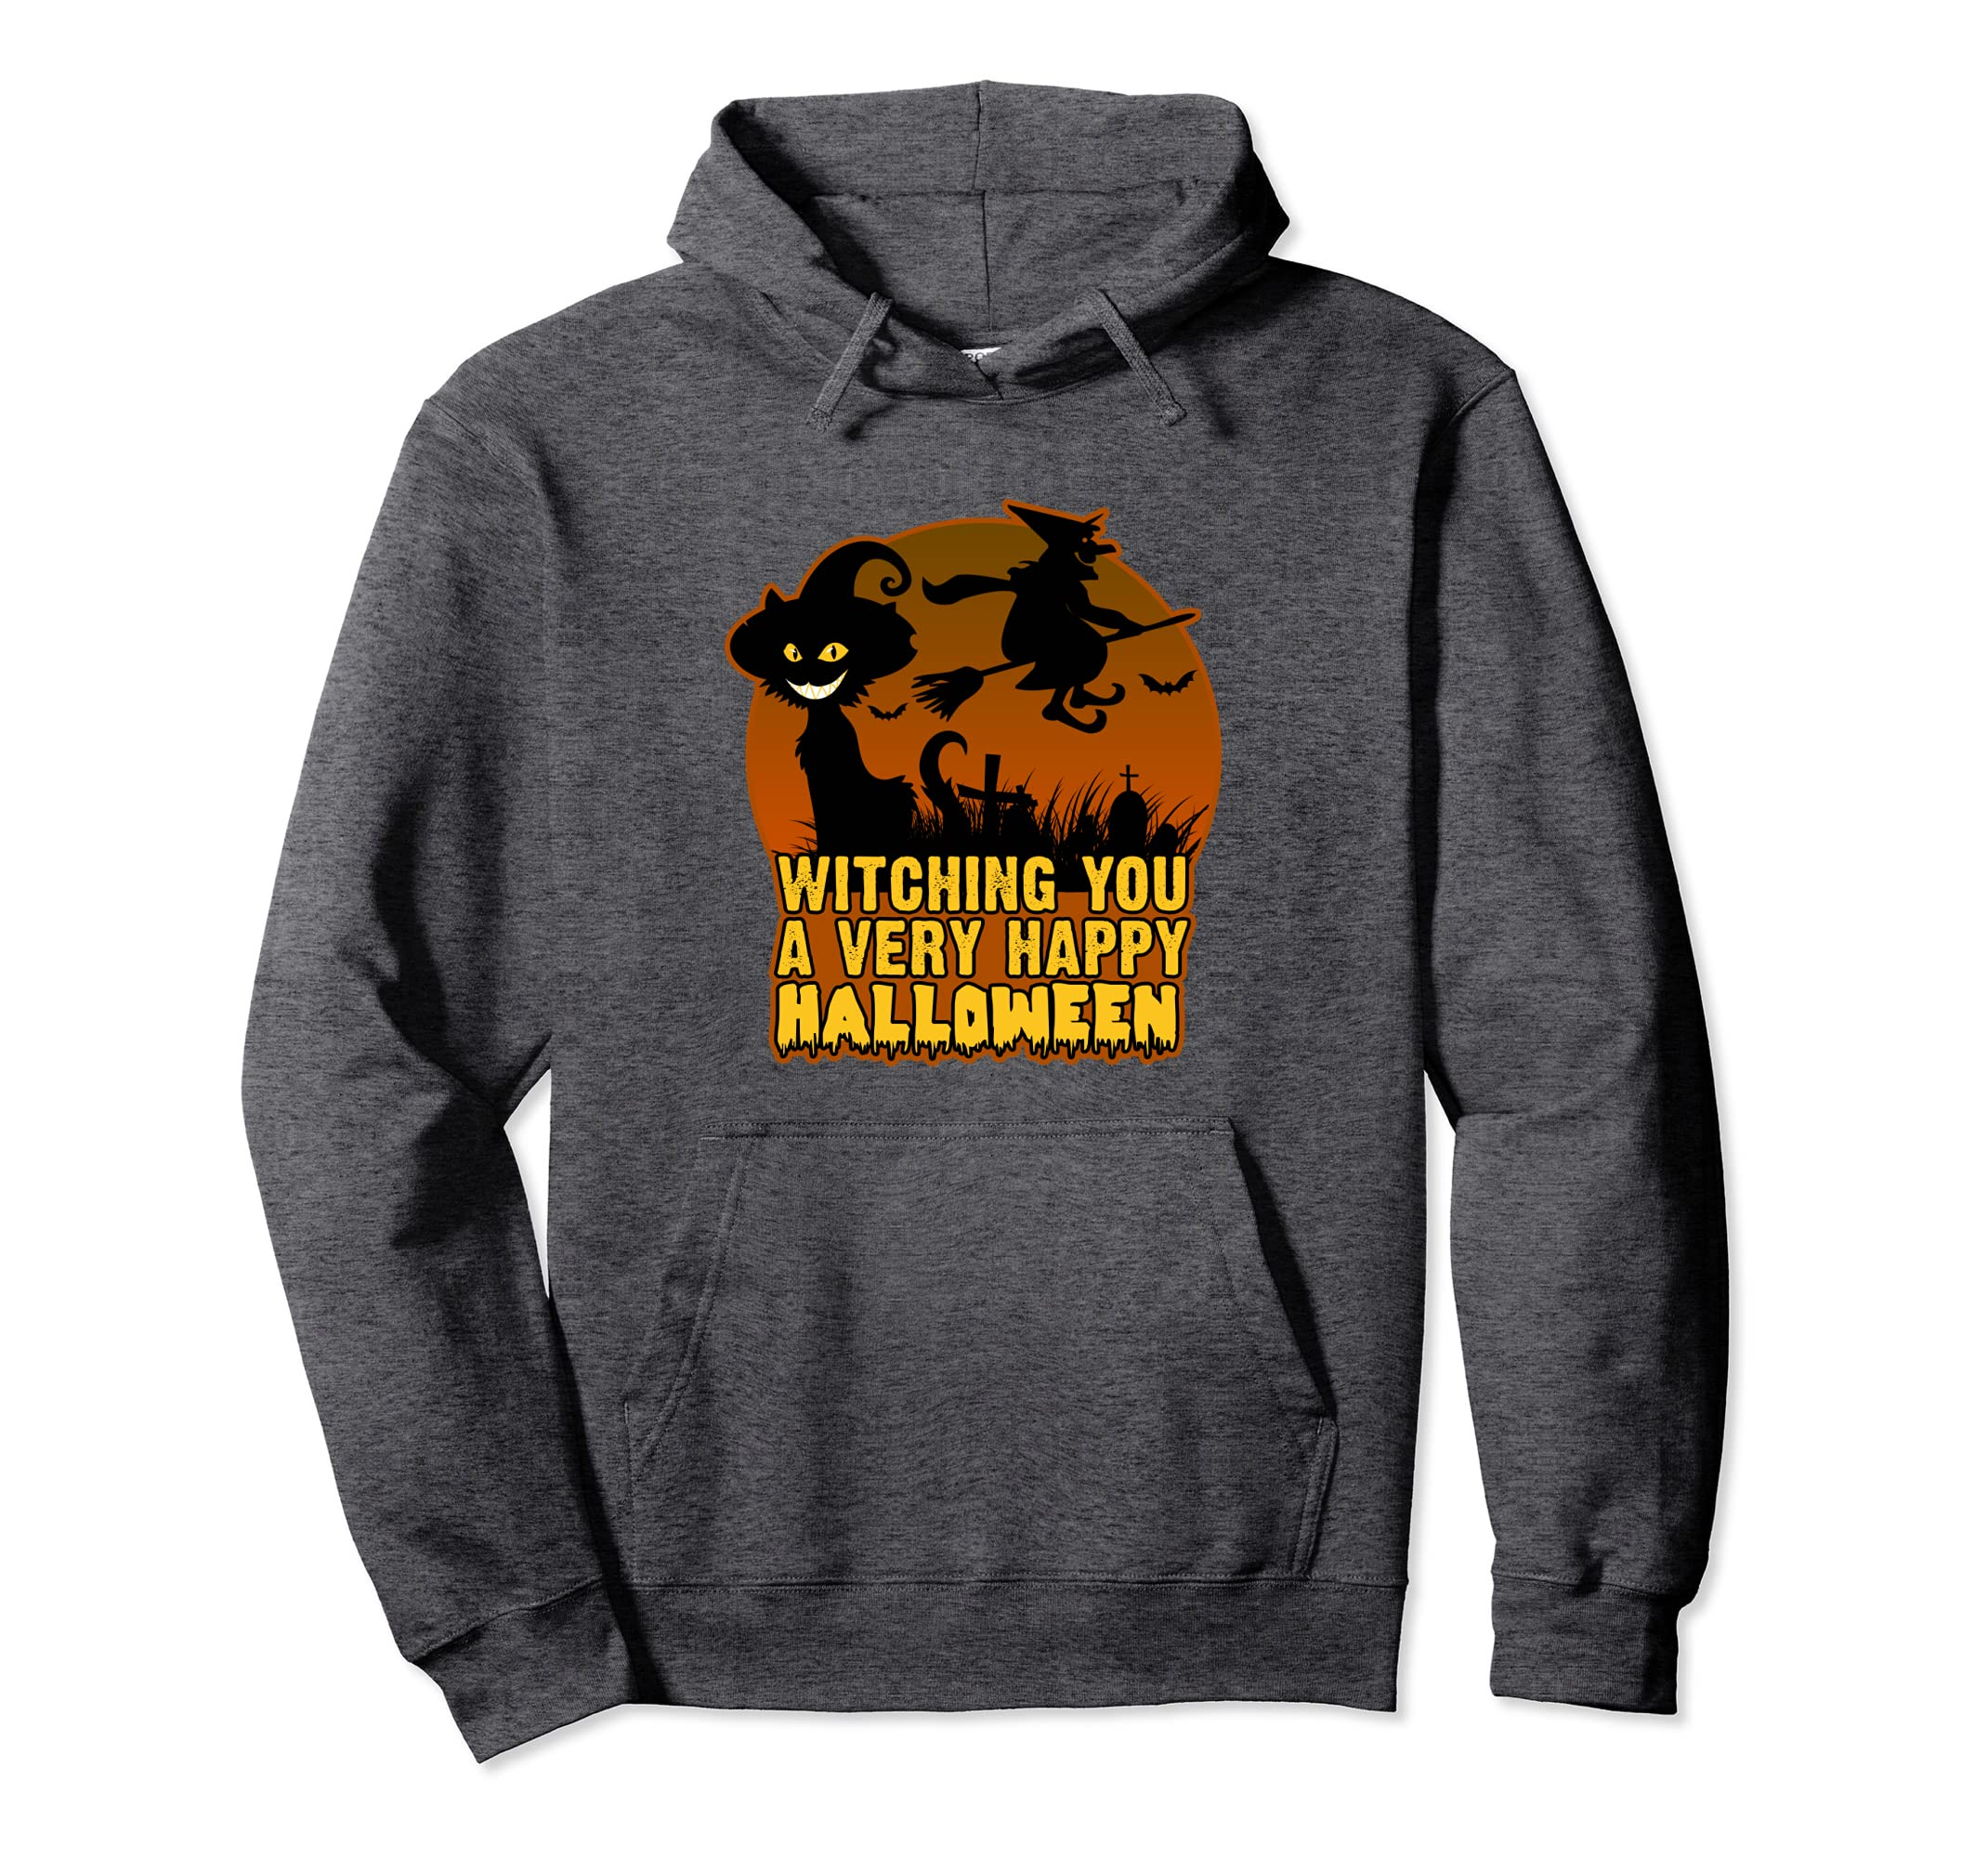 Witch Hoodie with Witching You a Very Happy Halloween Text-Colonhue